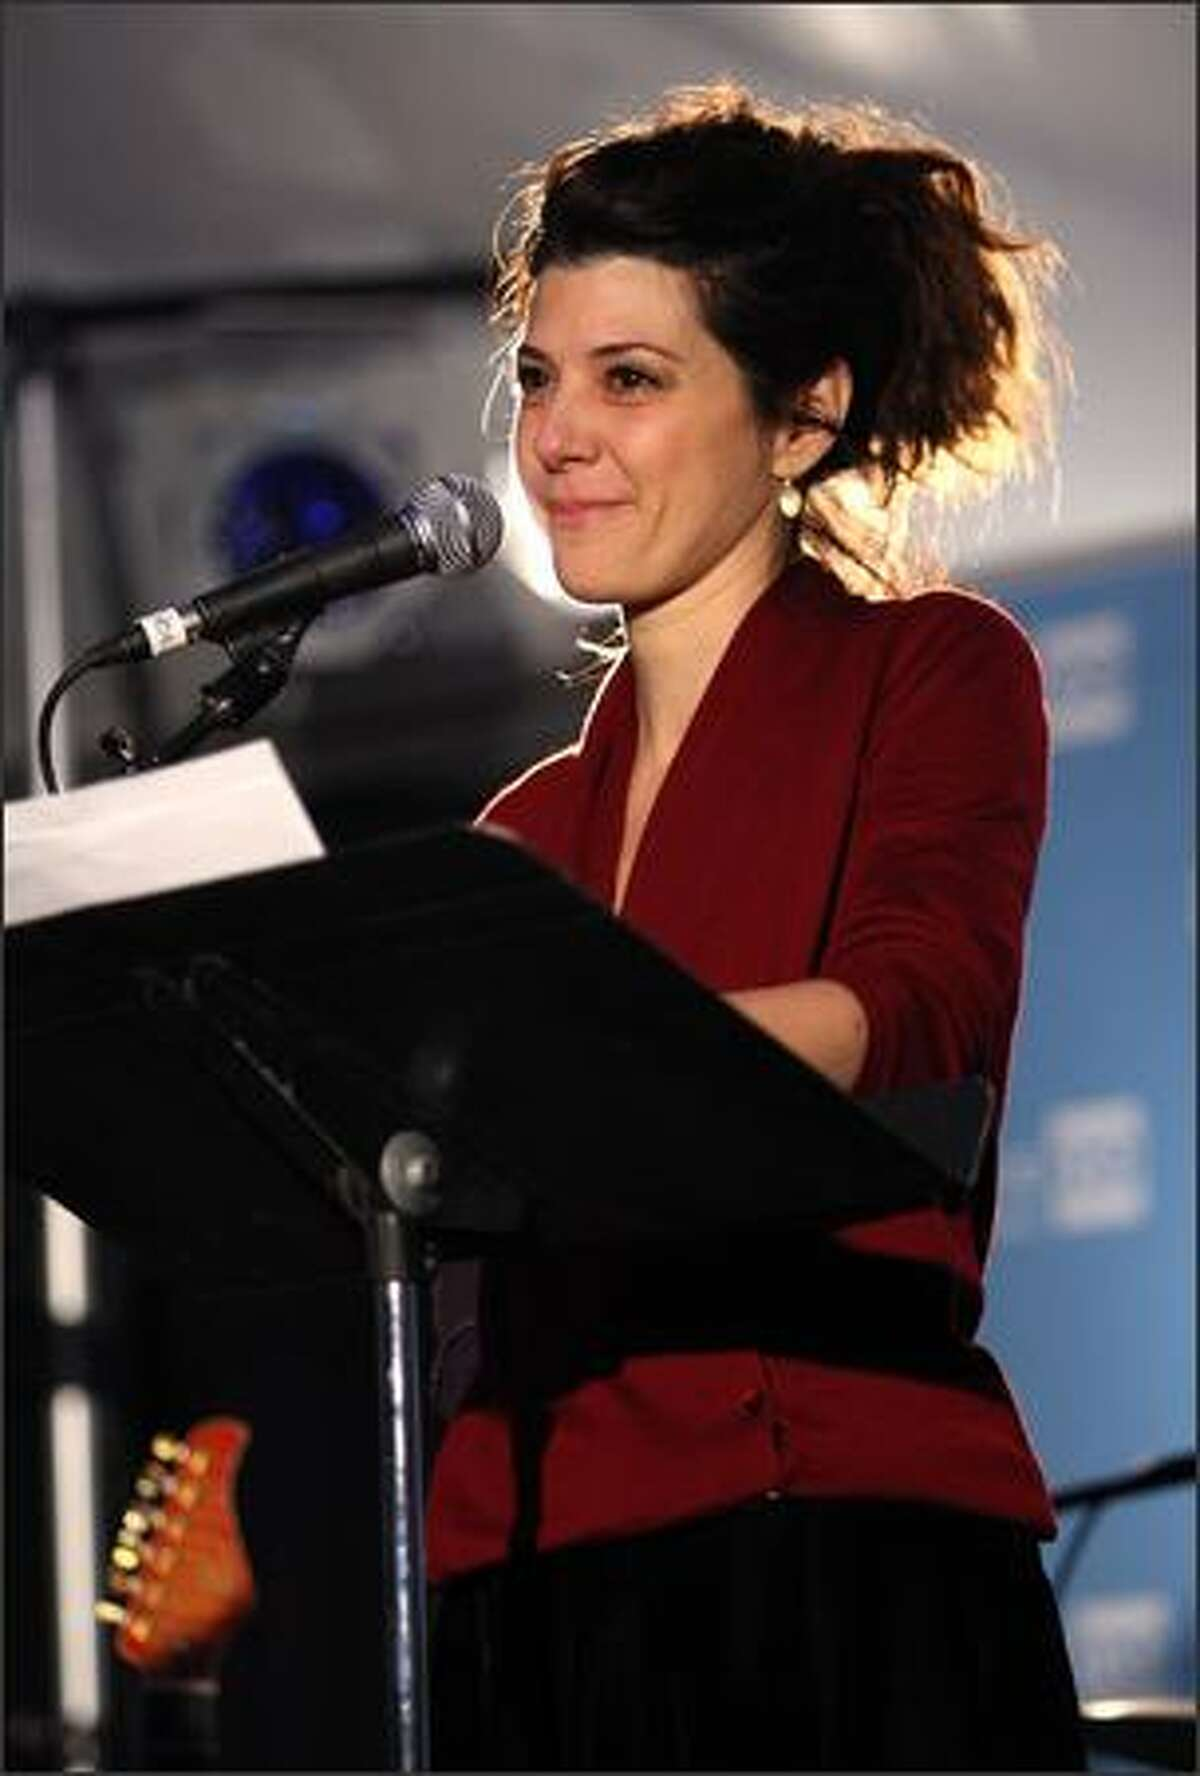 Actress Marisa Tomei speaks on stage at The People Speak ASCAP Music Cafe performance held during the 2009 Sundance Music Festival on Thursday in Park City, Utah.